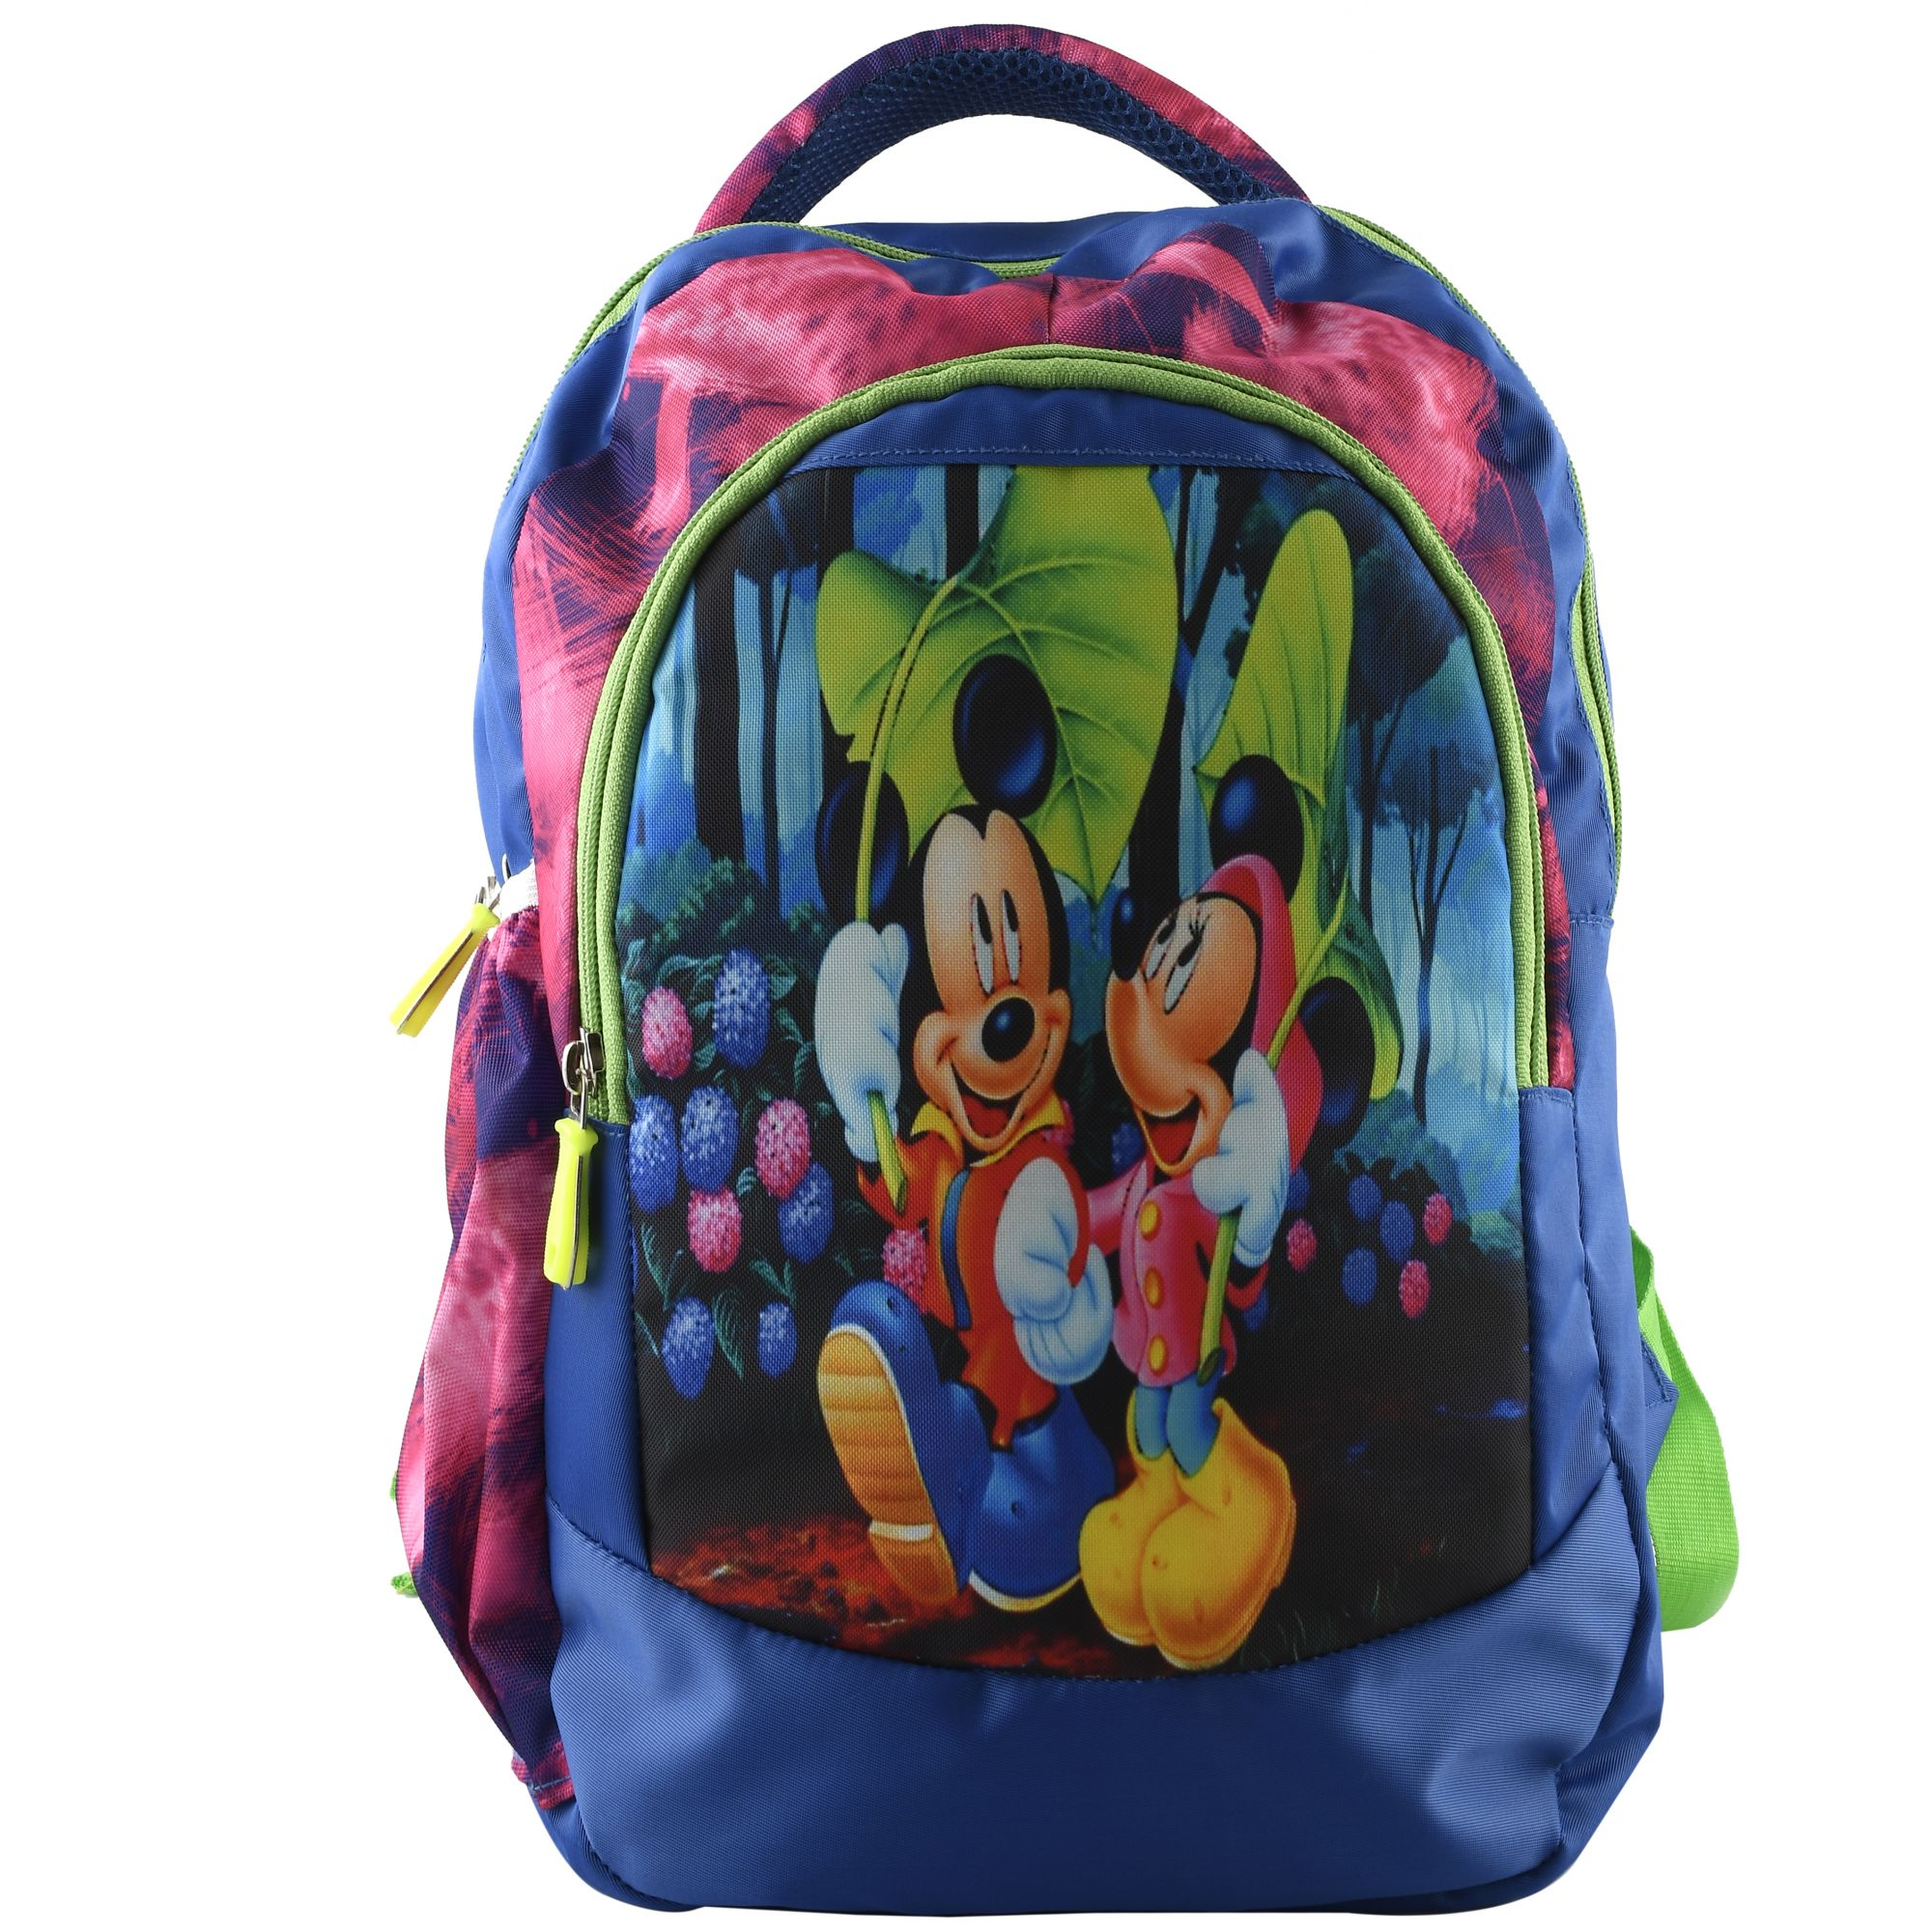 Kuber Industries Disney Mickey & Friends 15 inch Polyster School Bag/Backpack For Kids, Blue-DISNEY014